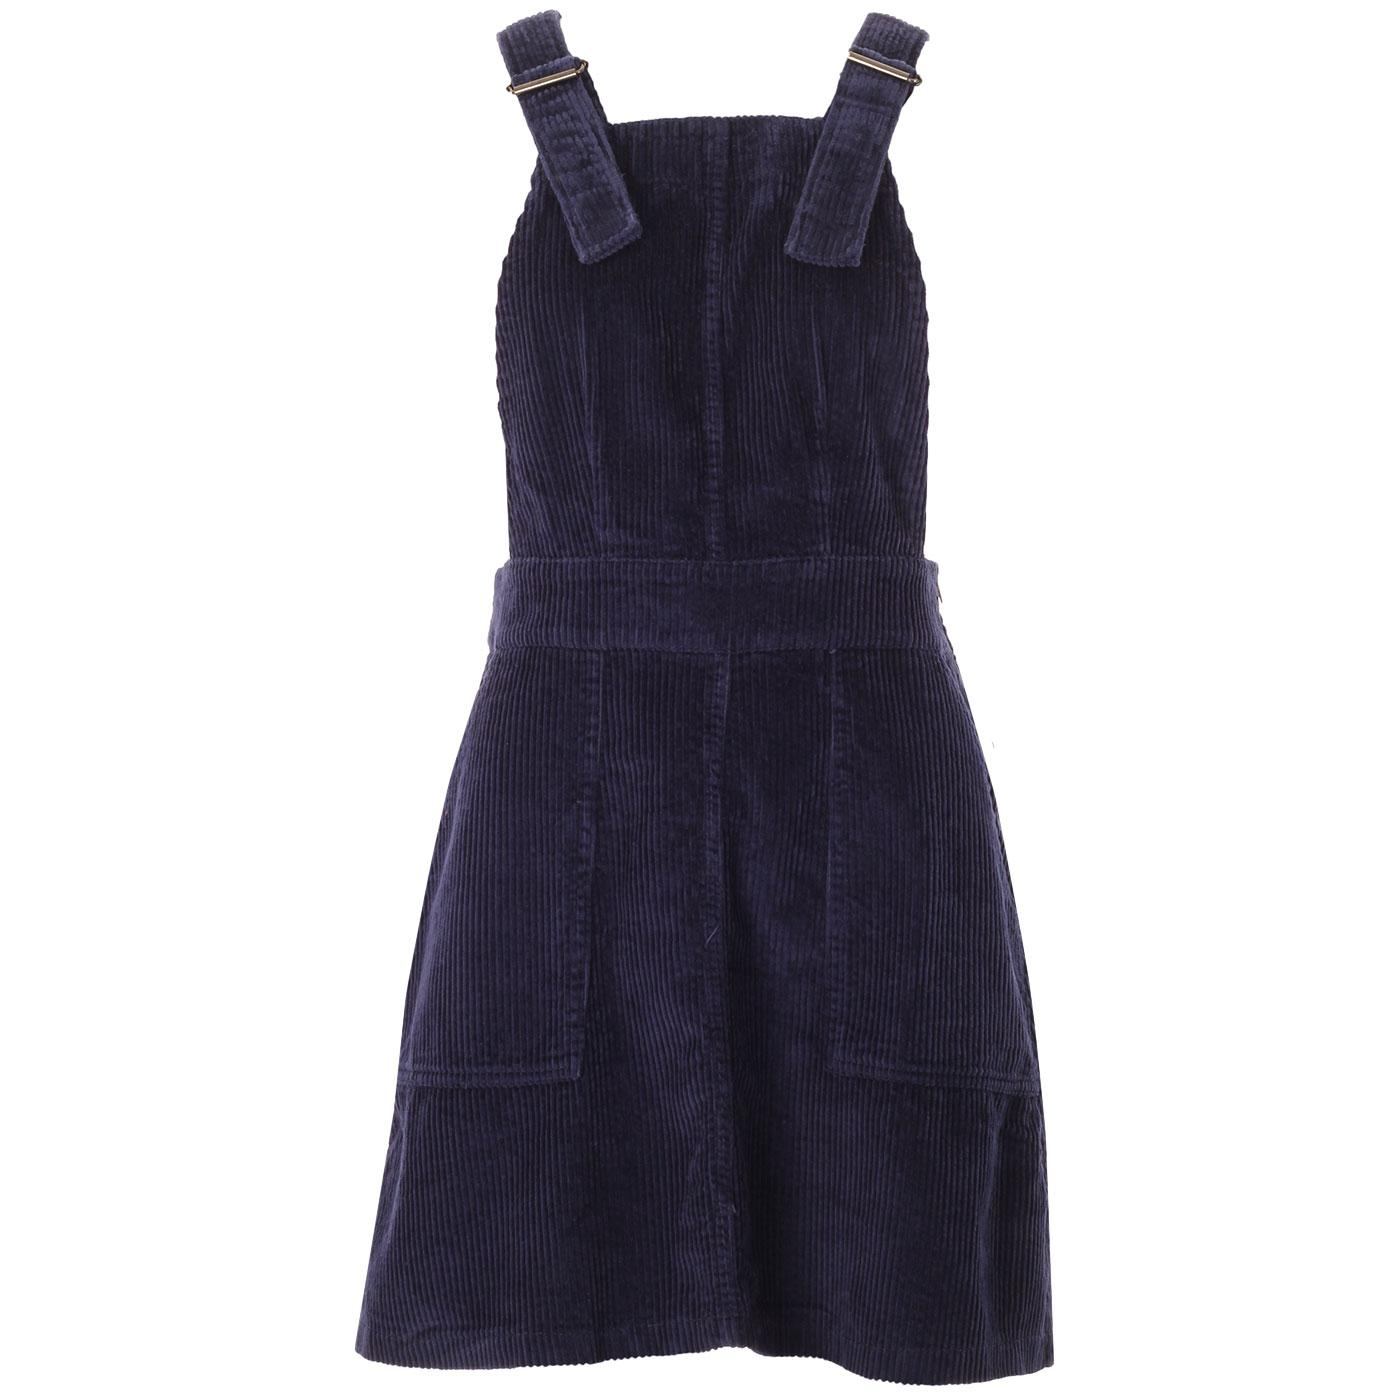 Madcap England Marlo Retro 1960s Mod Jumbo Cord Pinafore Dress in Navy